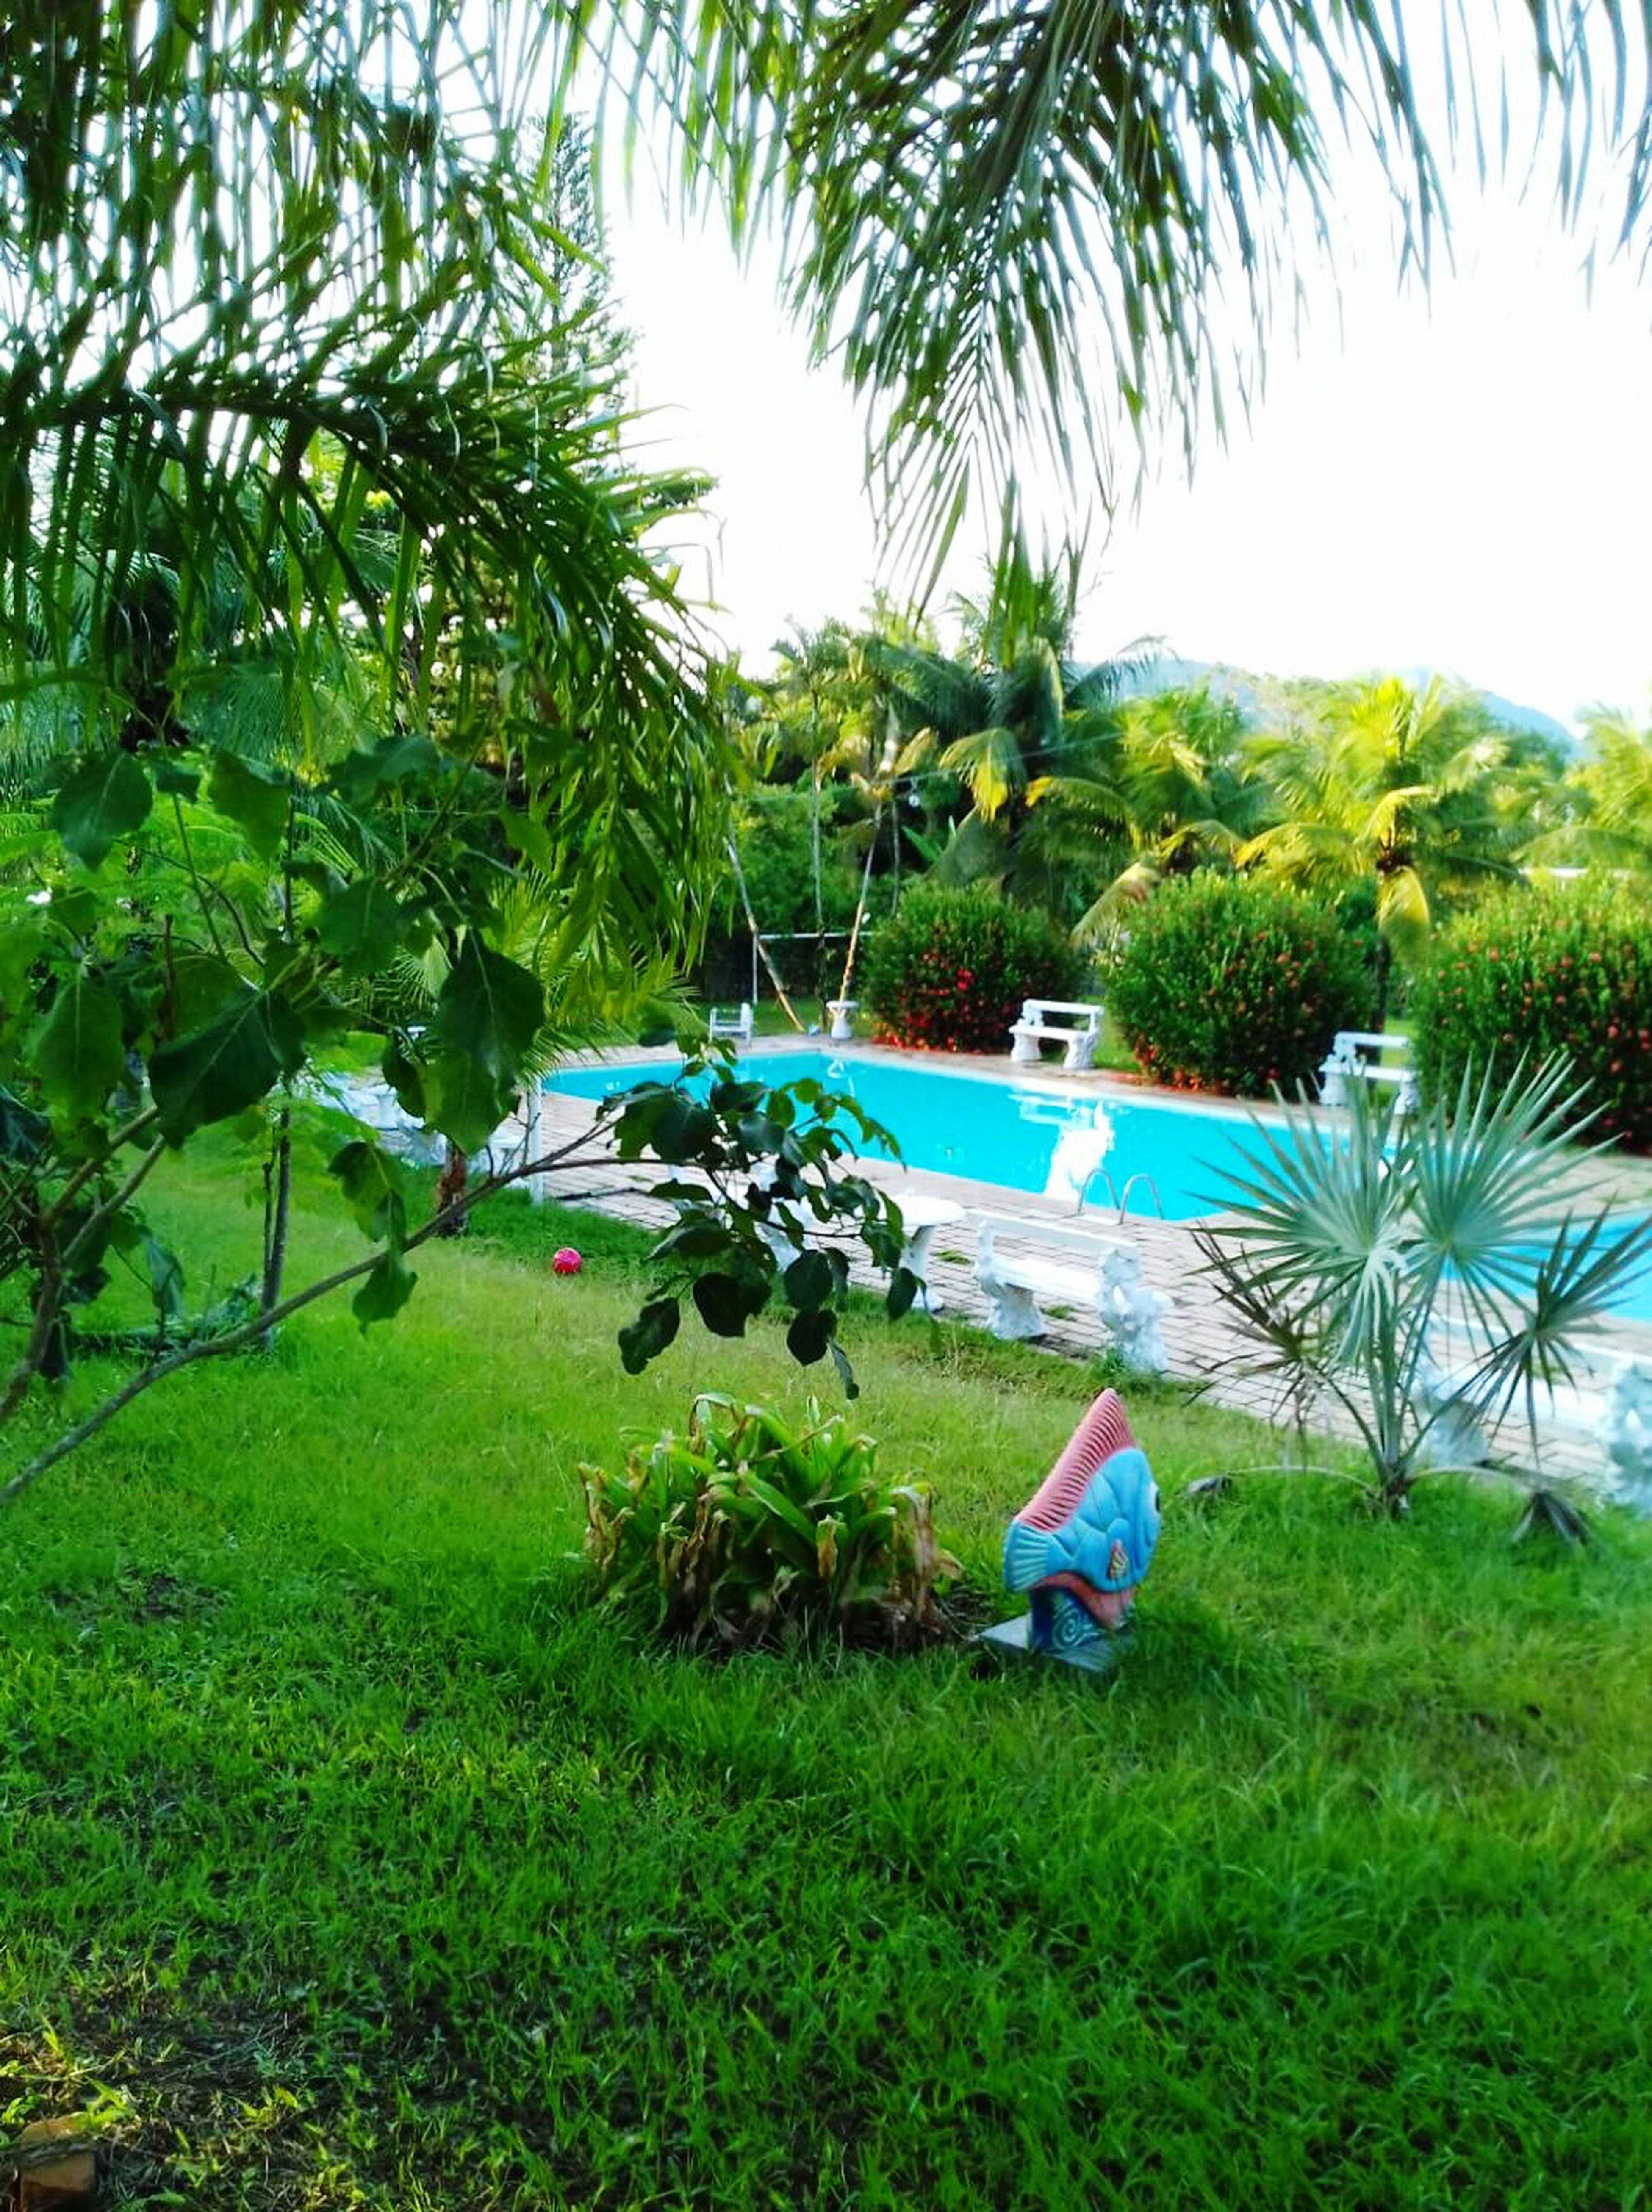 Summer ... Tranquil Scene Day Beauty In Nature Tree Tranquility Nature Water Hello World Green Color Palm Tree Outdoors Growth Environmental Conservation Scenics Grass No People Sky